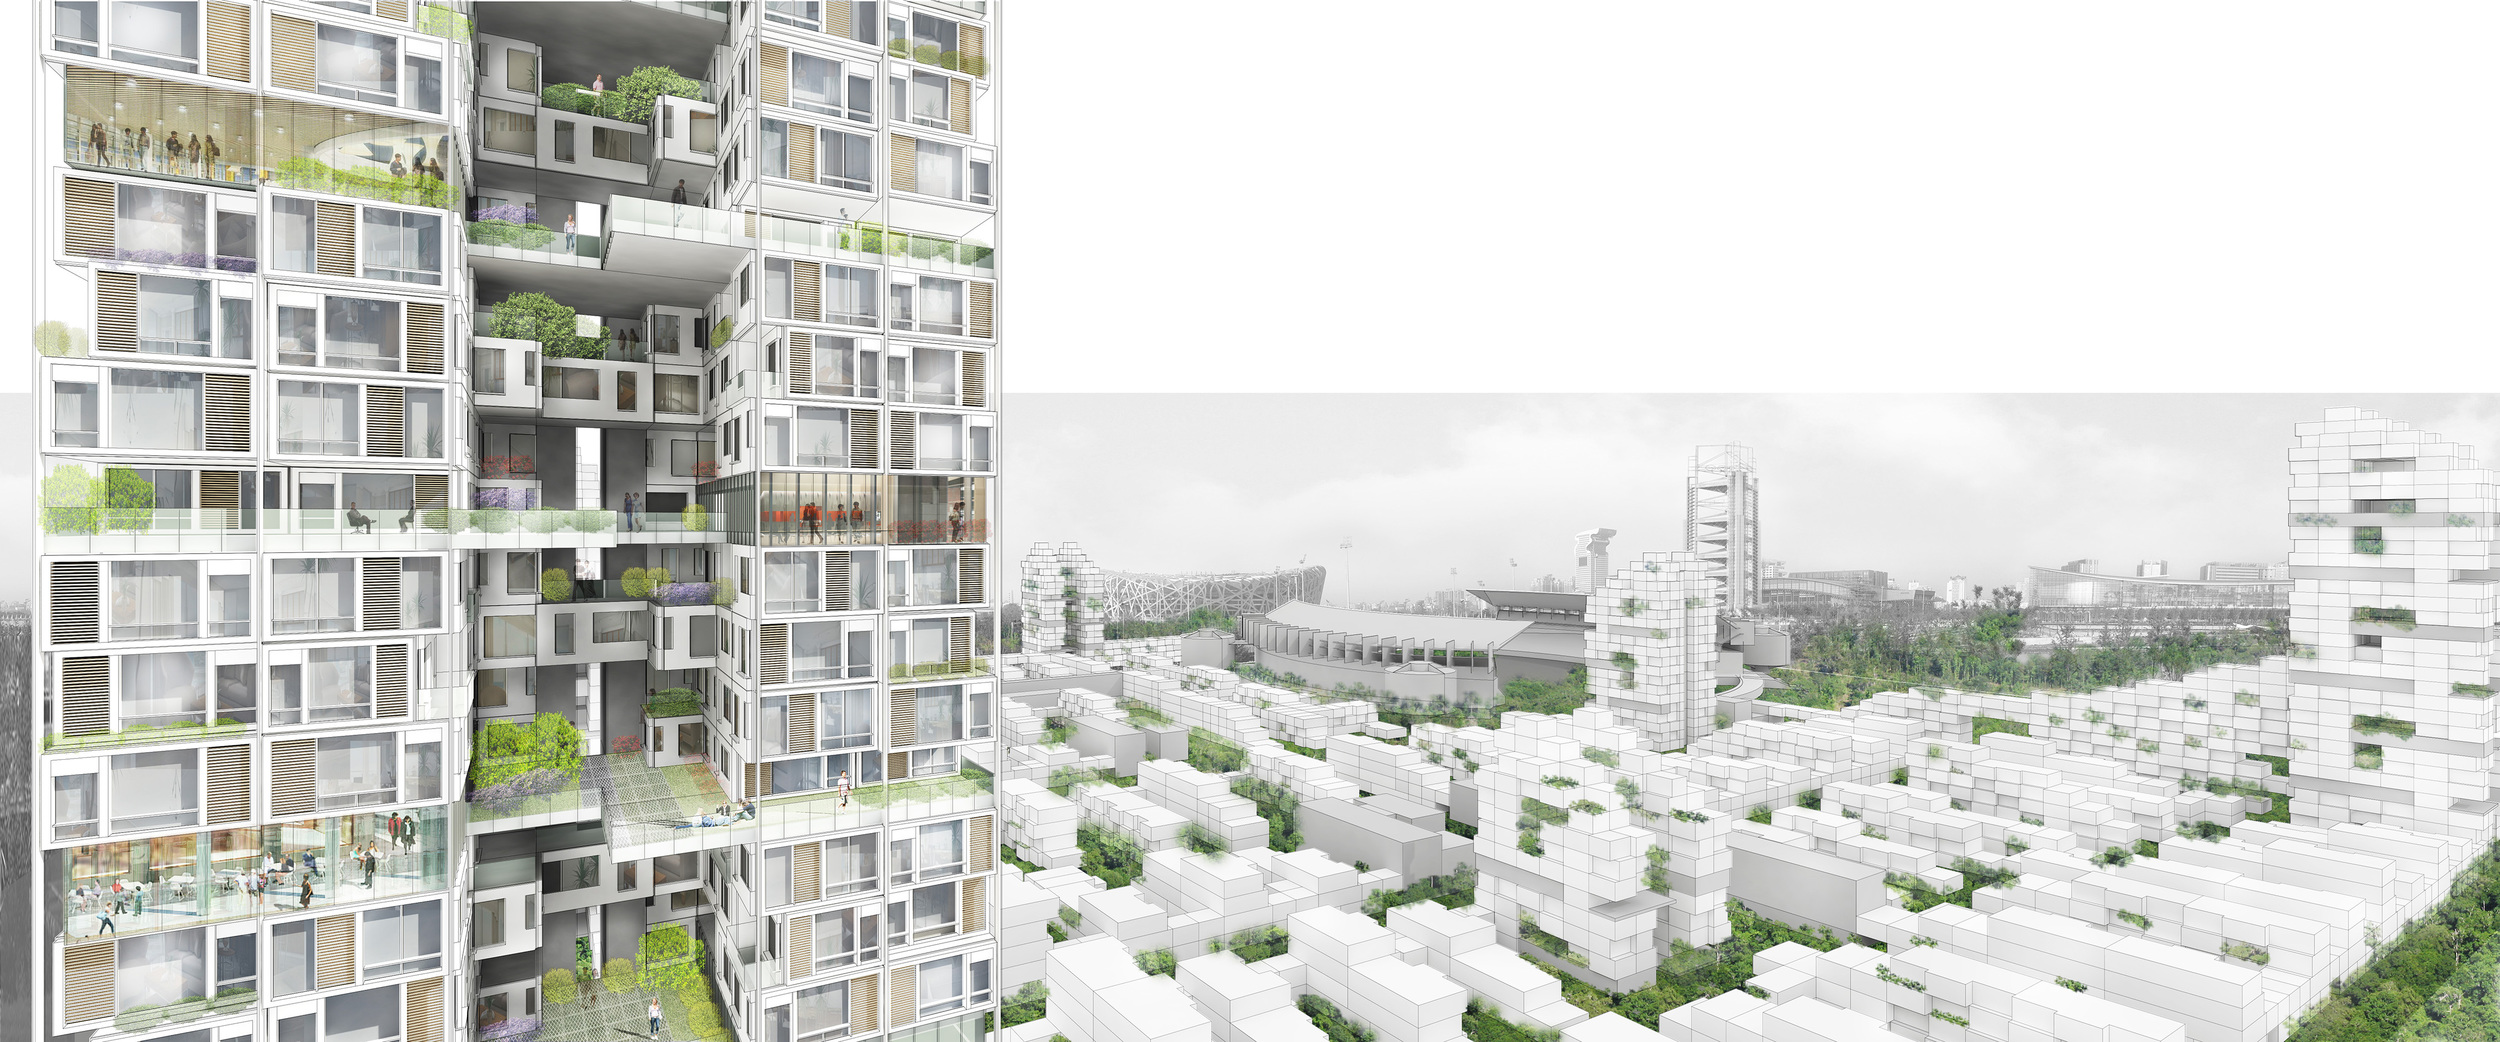 Beijing Olympic Park South Master Plan - Tower Rendering.jpg